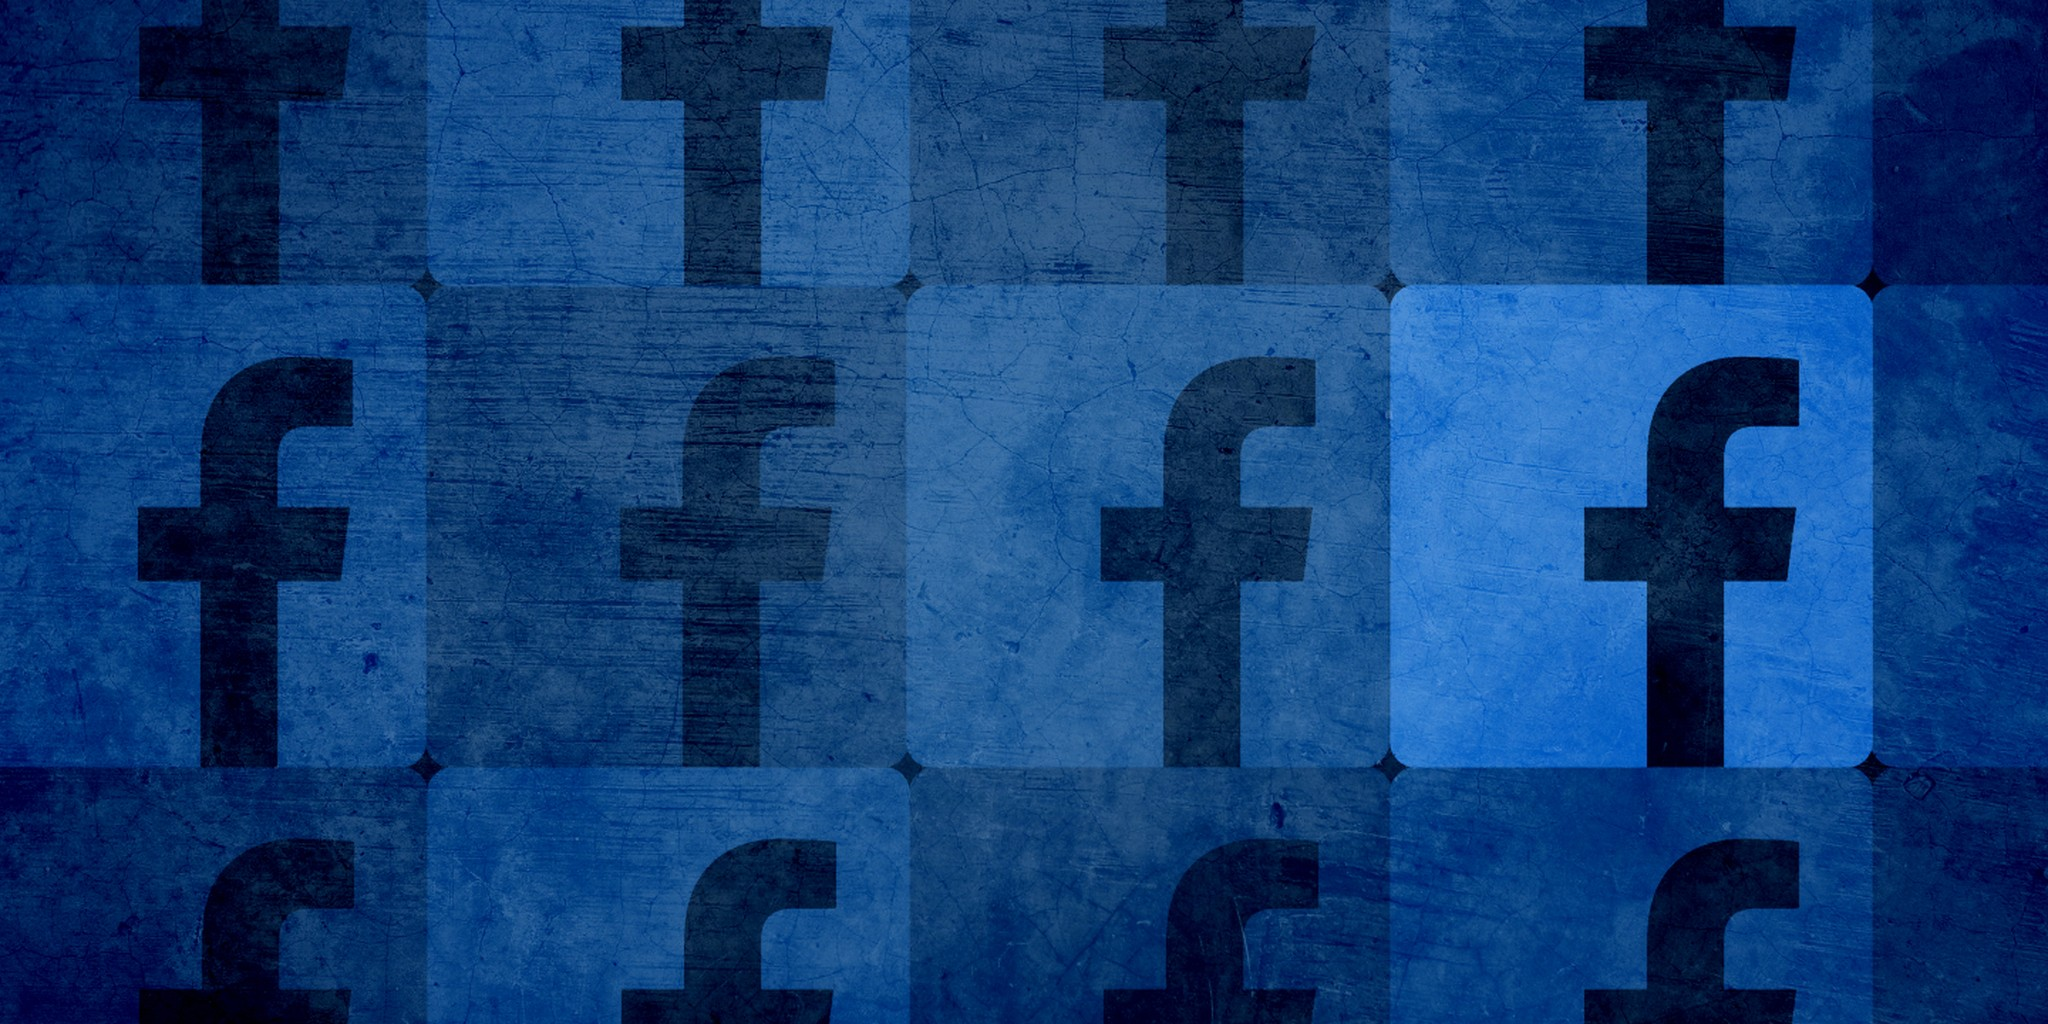 abstract art of facebook logo